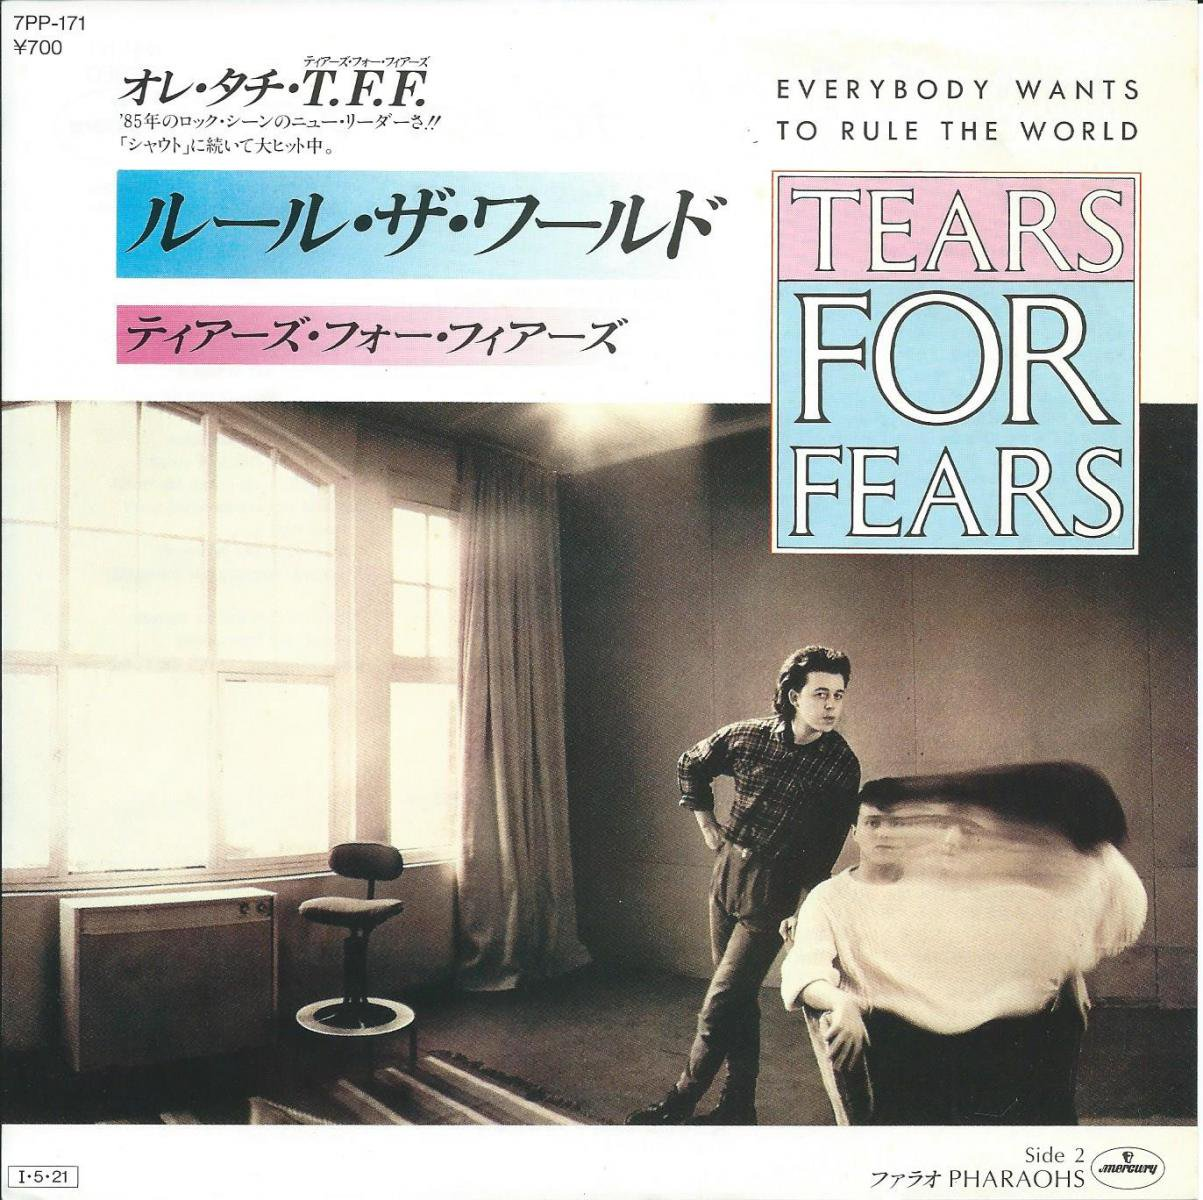 TEARS FOR FEARS ティアーズ・フォー・フィアーズ / EVERYBODY WANTS TO RULE THE WORLD  (7